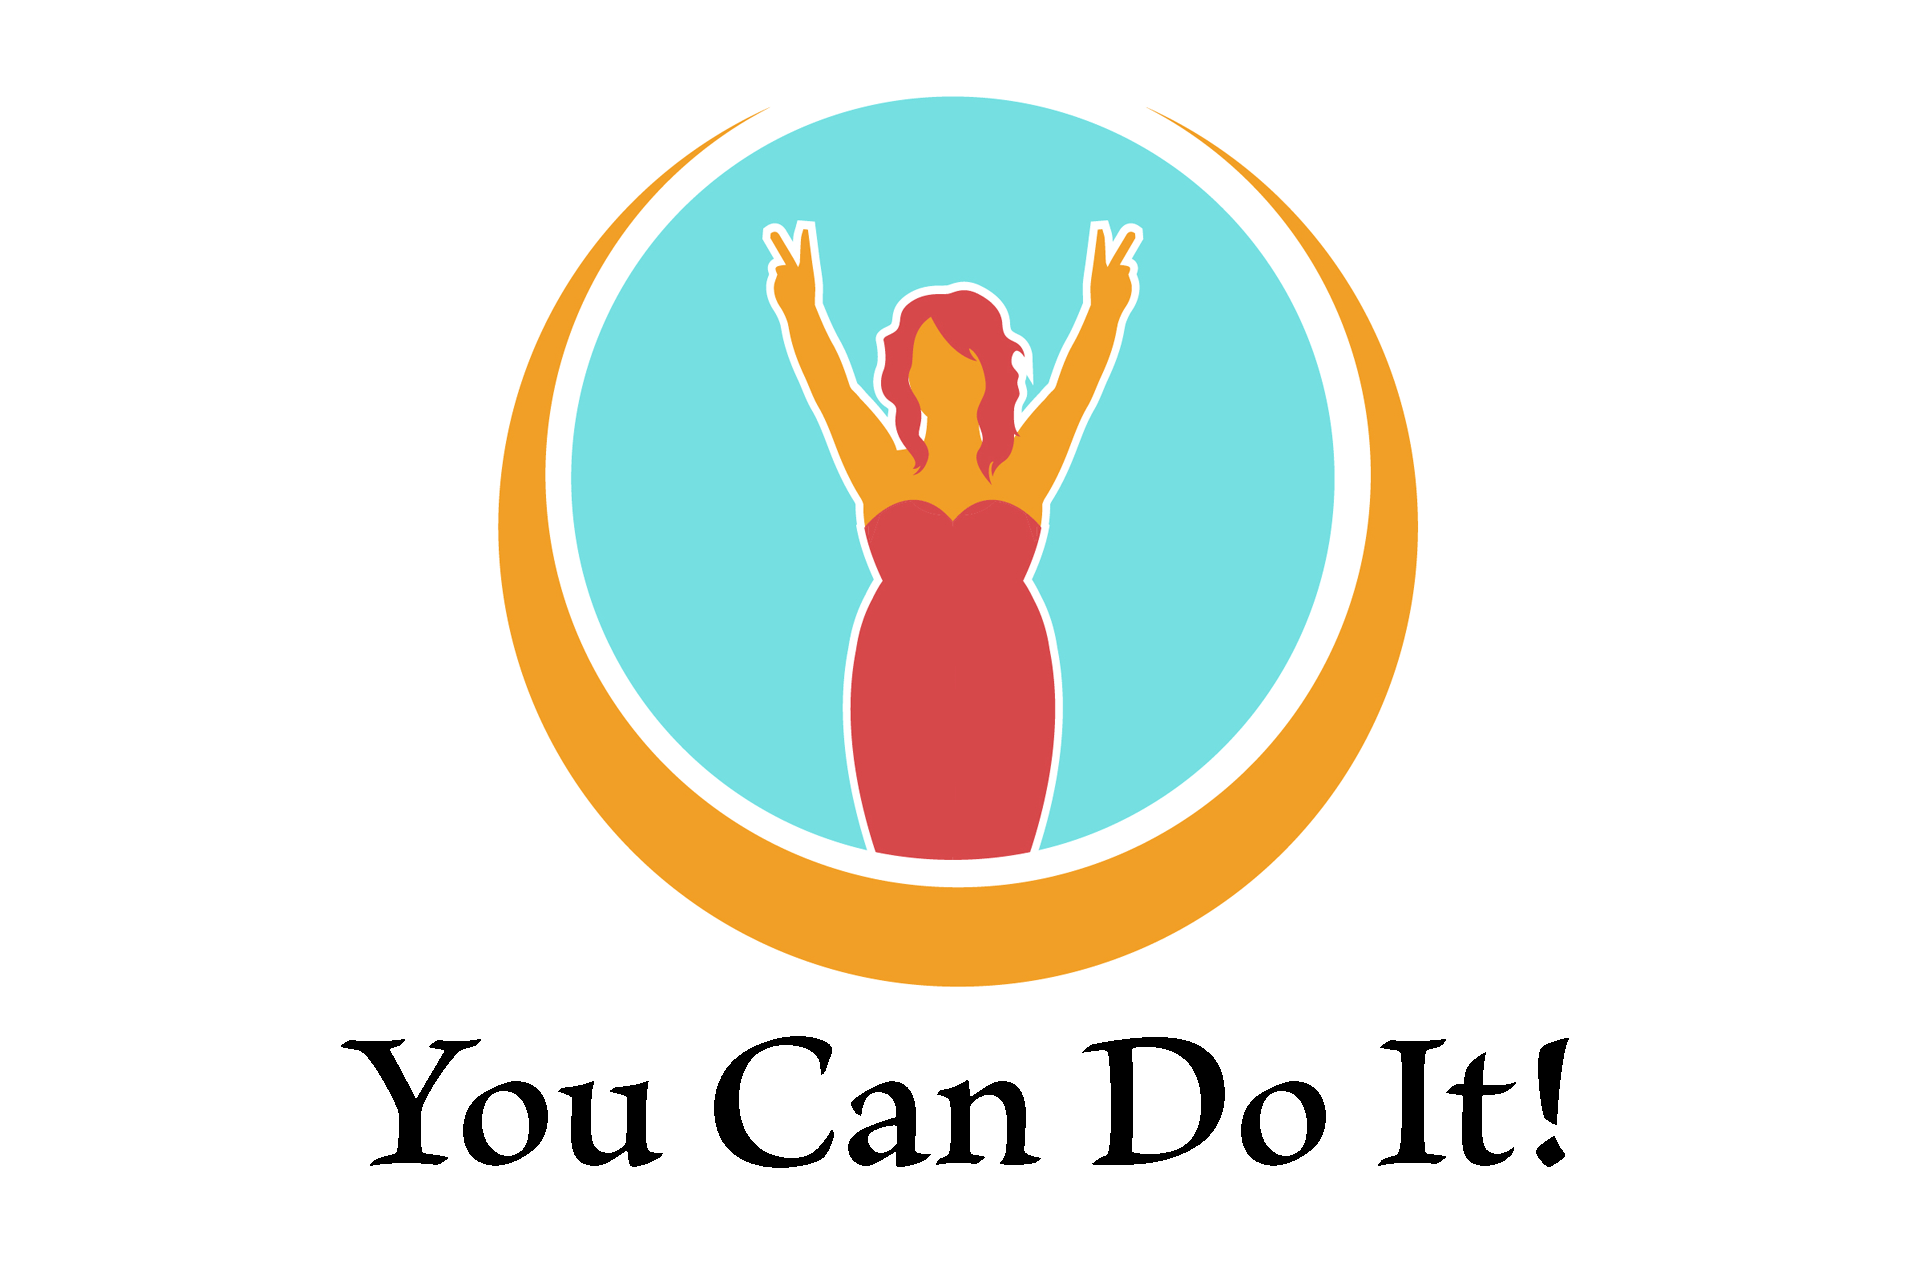 You can do it, logo of stress eating solutions